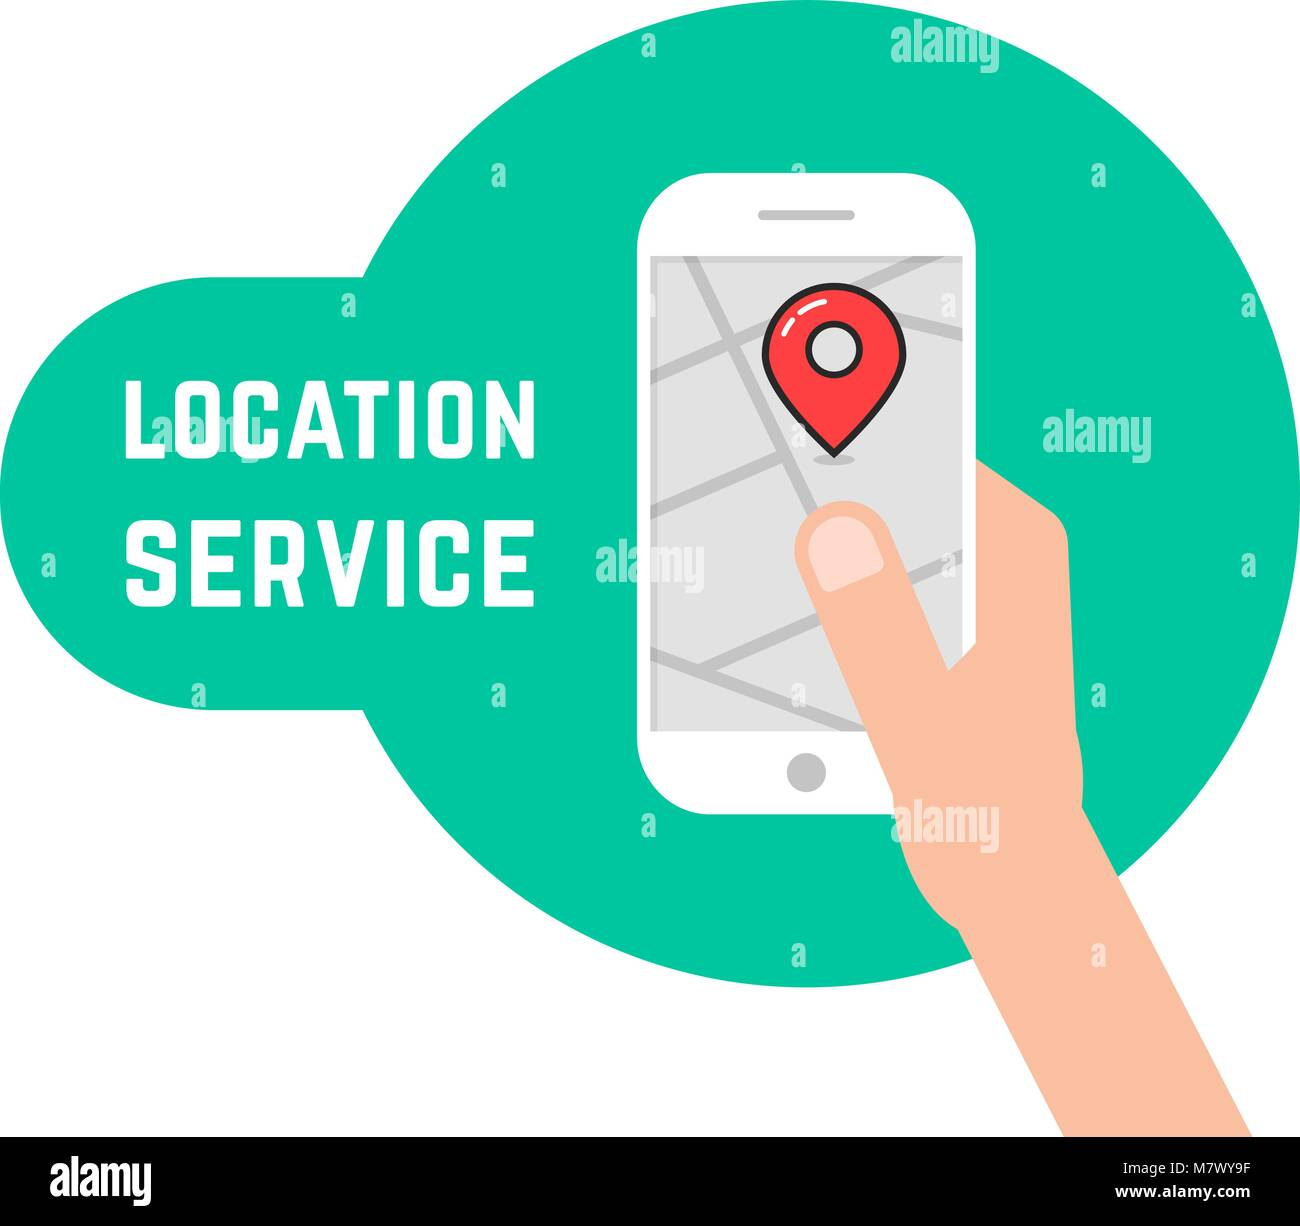 hand holding phone like location service - Stock Image